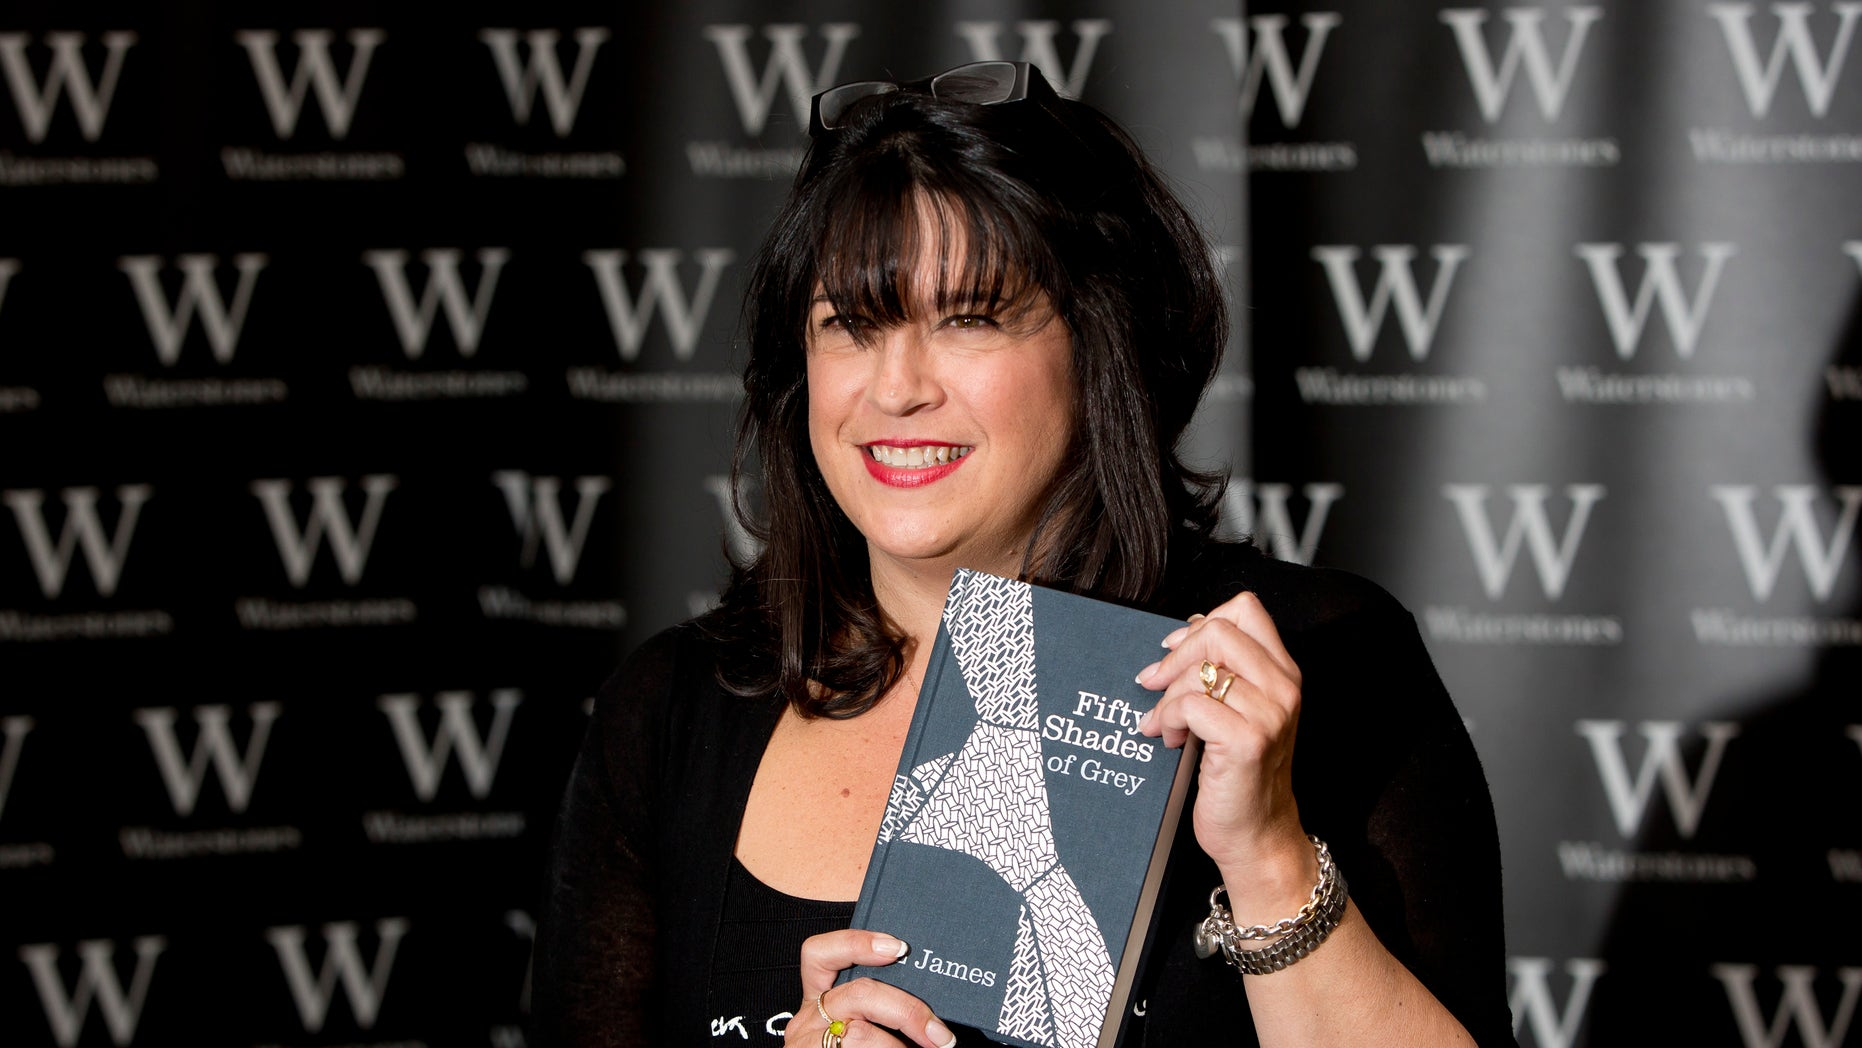 Sept. 6, 2012: E L James, author of Fifty Shades of Grey, poses for photographers during a book signing in London.